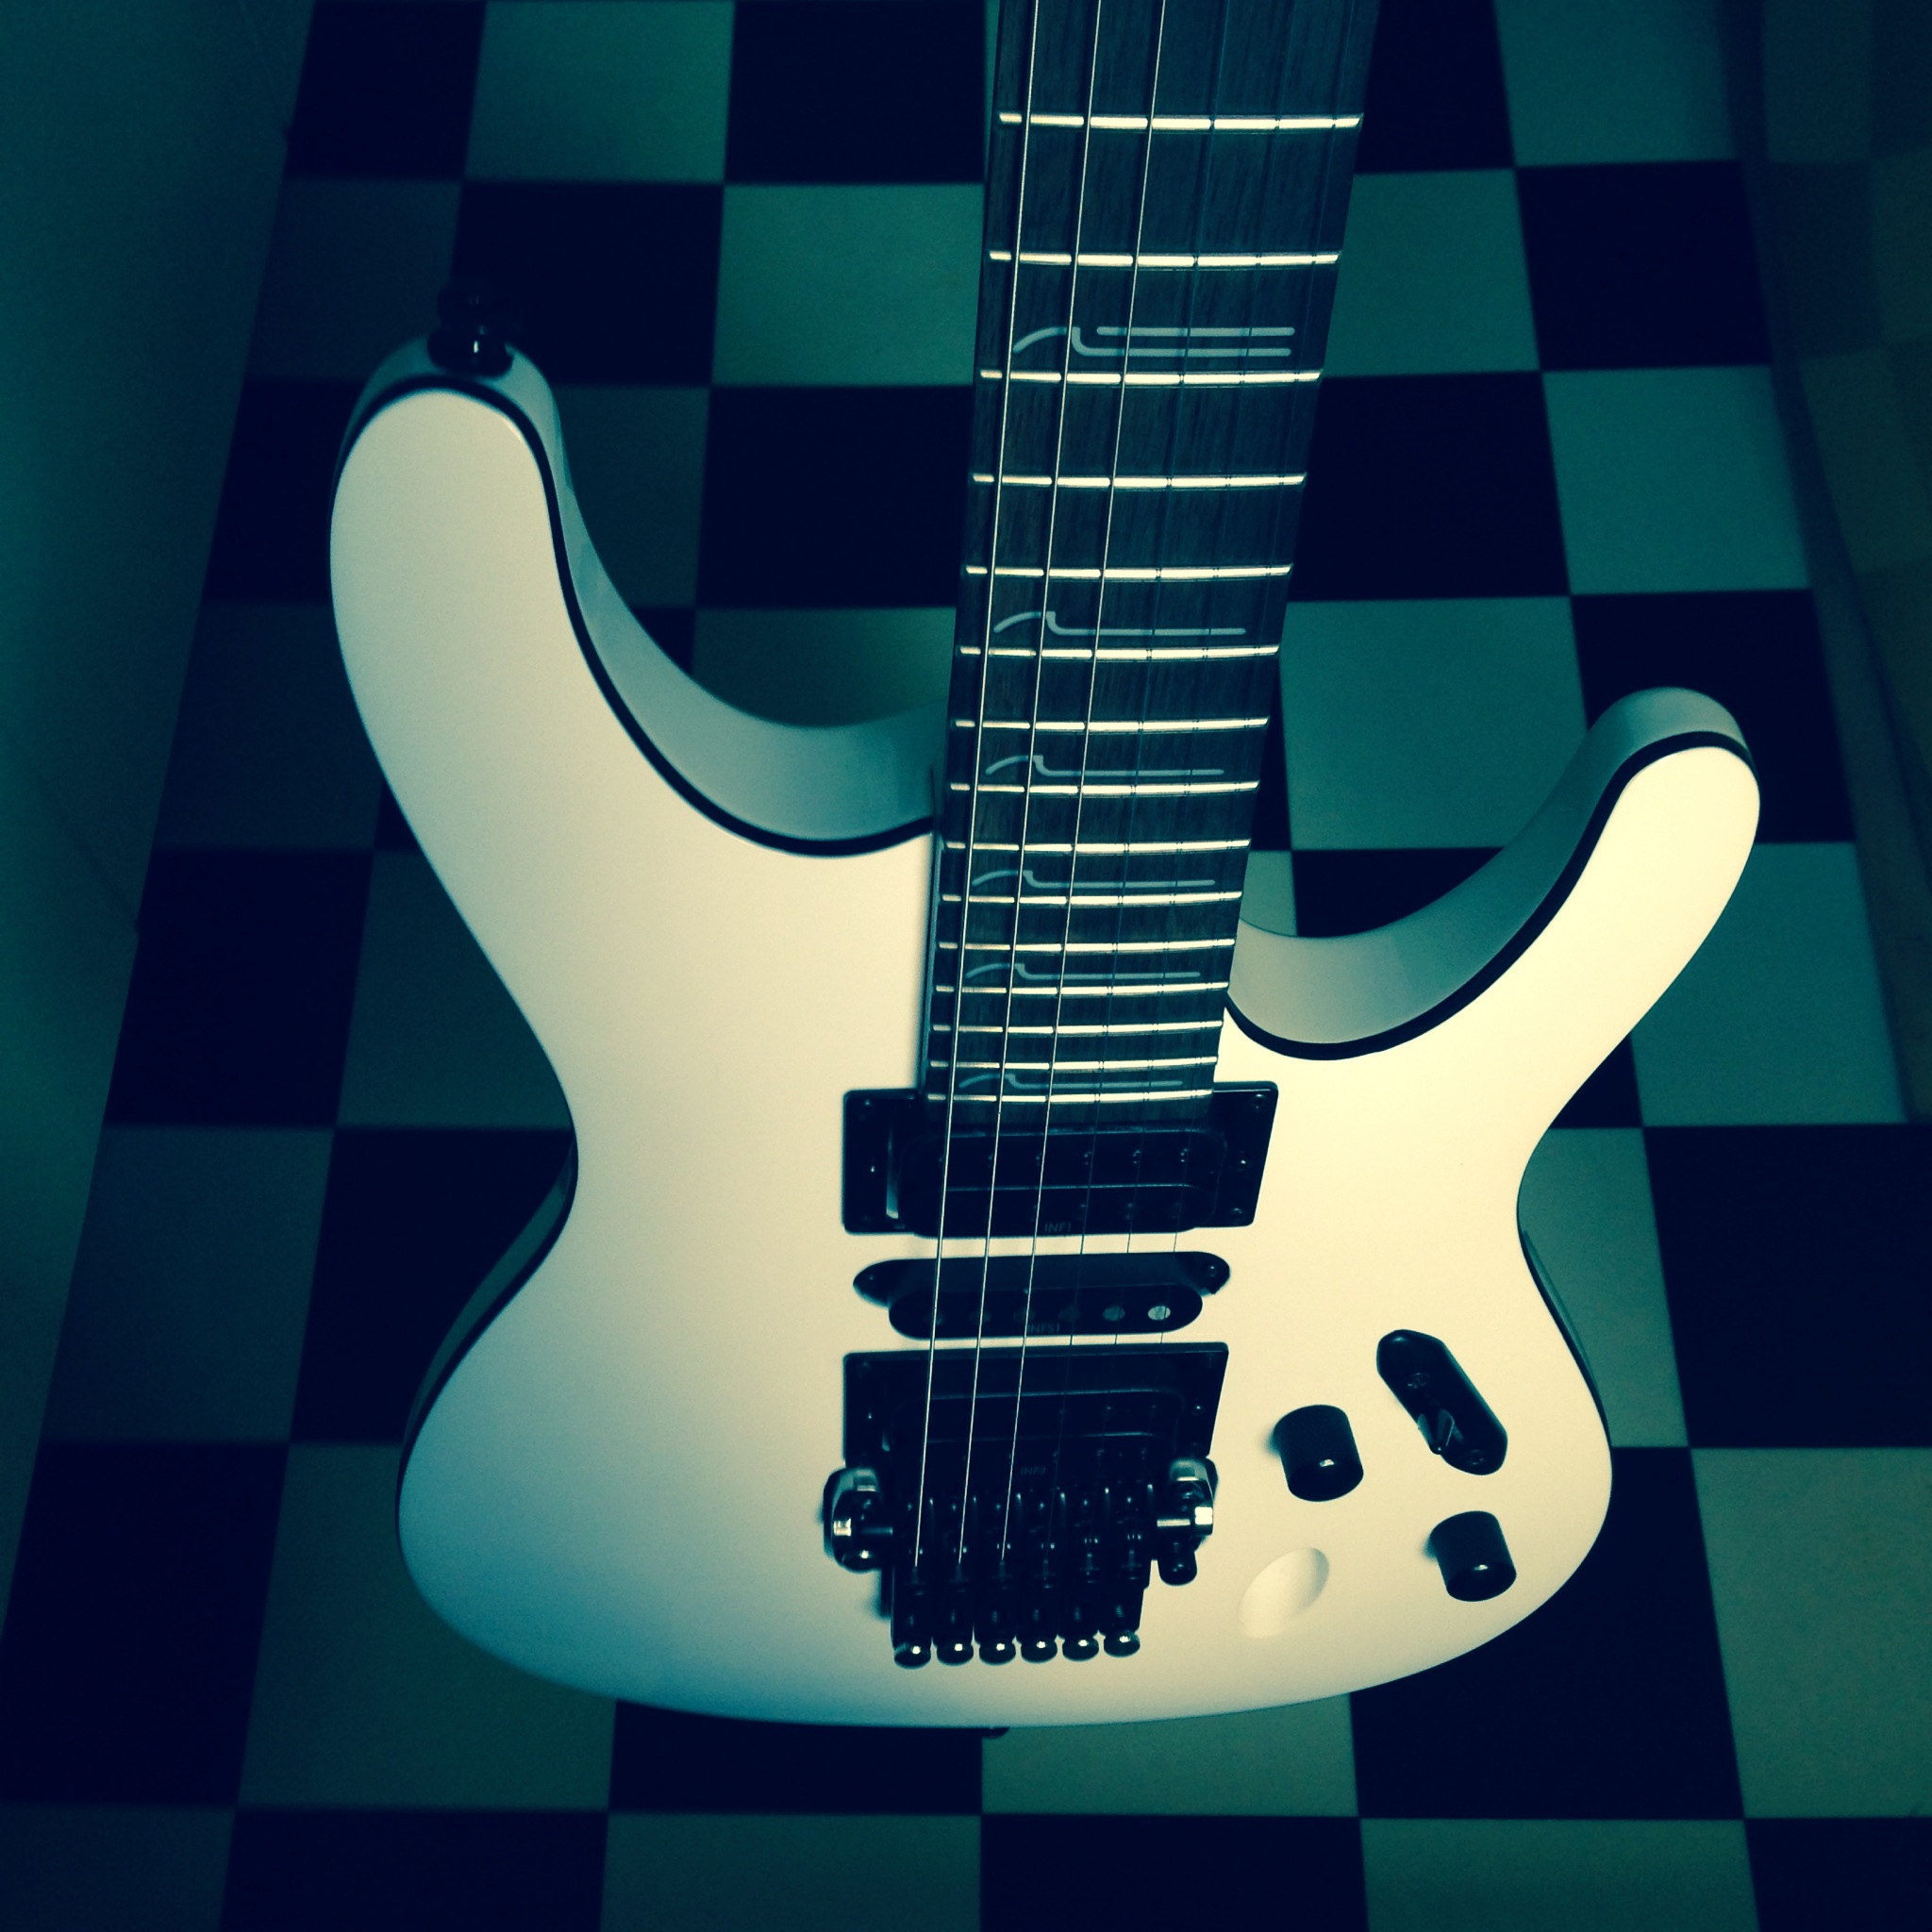 Ibanez-S-series-electric-guitar-white-model-S570B-The-Wong-Janice-2.JPG